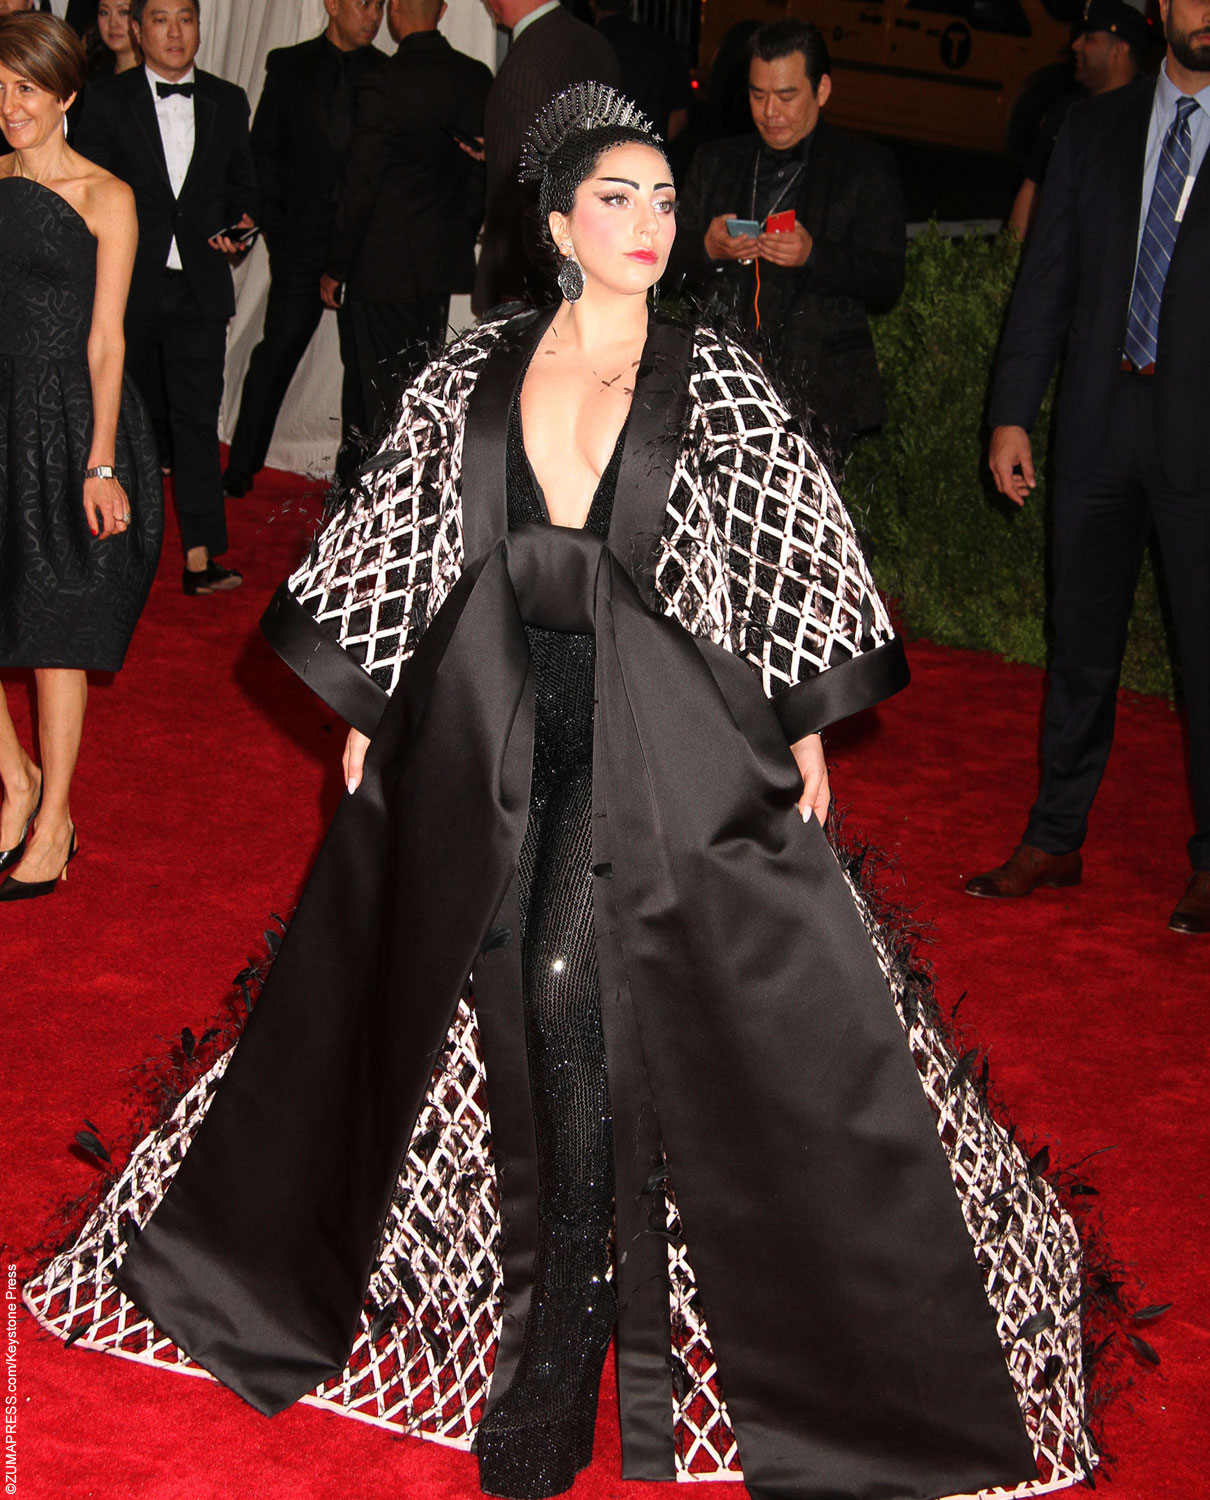 Of course, Lady Gaga made a statement at the Met Gala. Wearing an Alexander Wang bodysuit and cape paired with a lavish headpiece, this look could be considered one of the more tone-downed that Gaga has worn. Lady Gaga worked the red carpet and posed with the designer of her gown for photos.